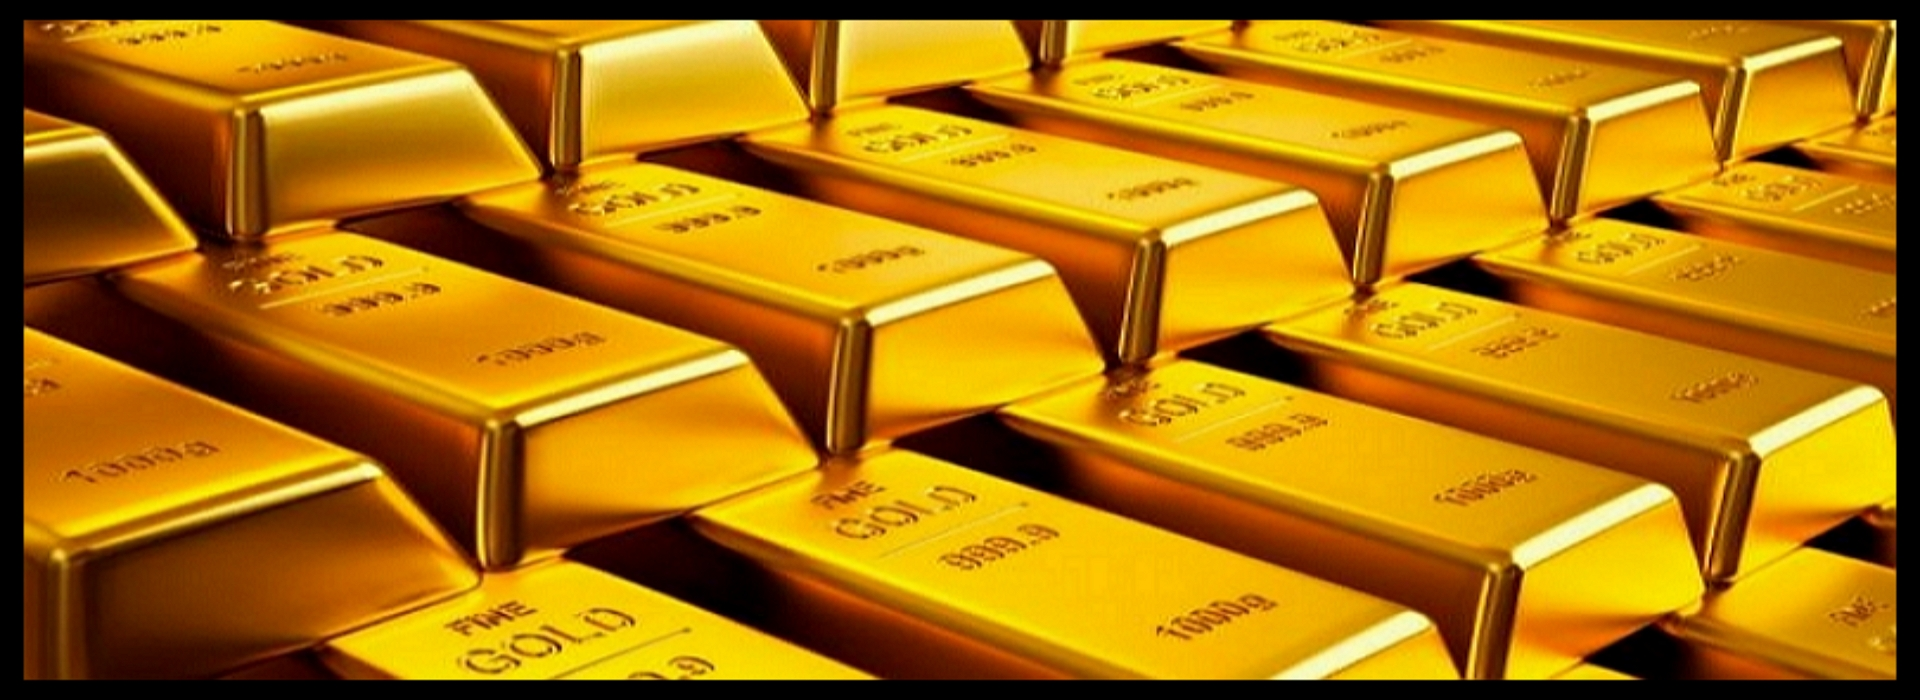 precious metals recovery experts